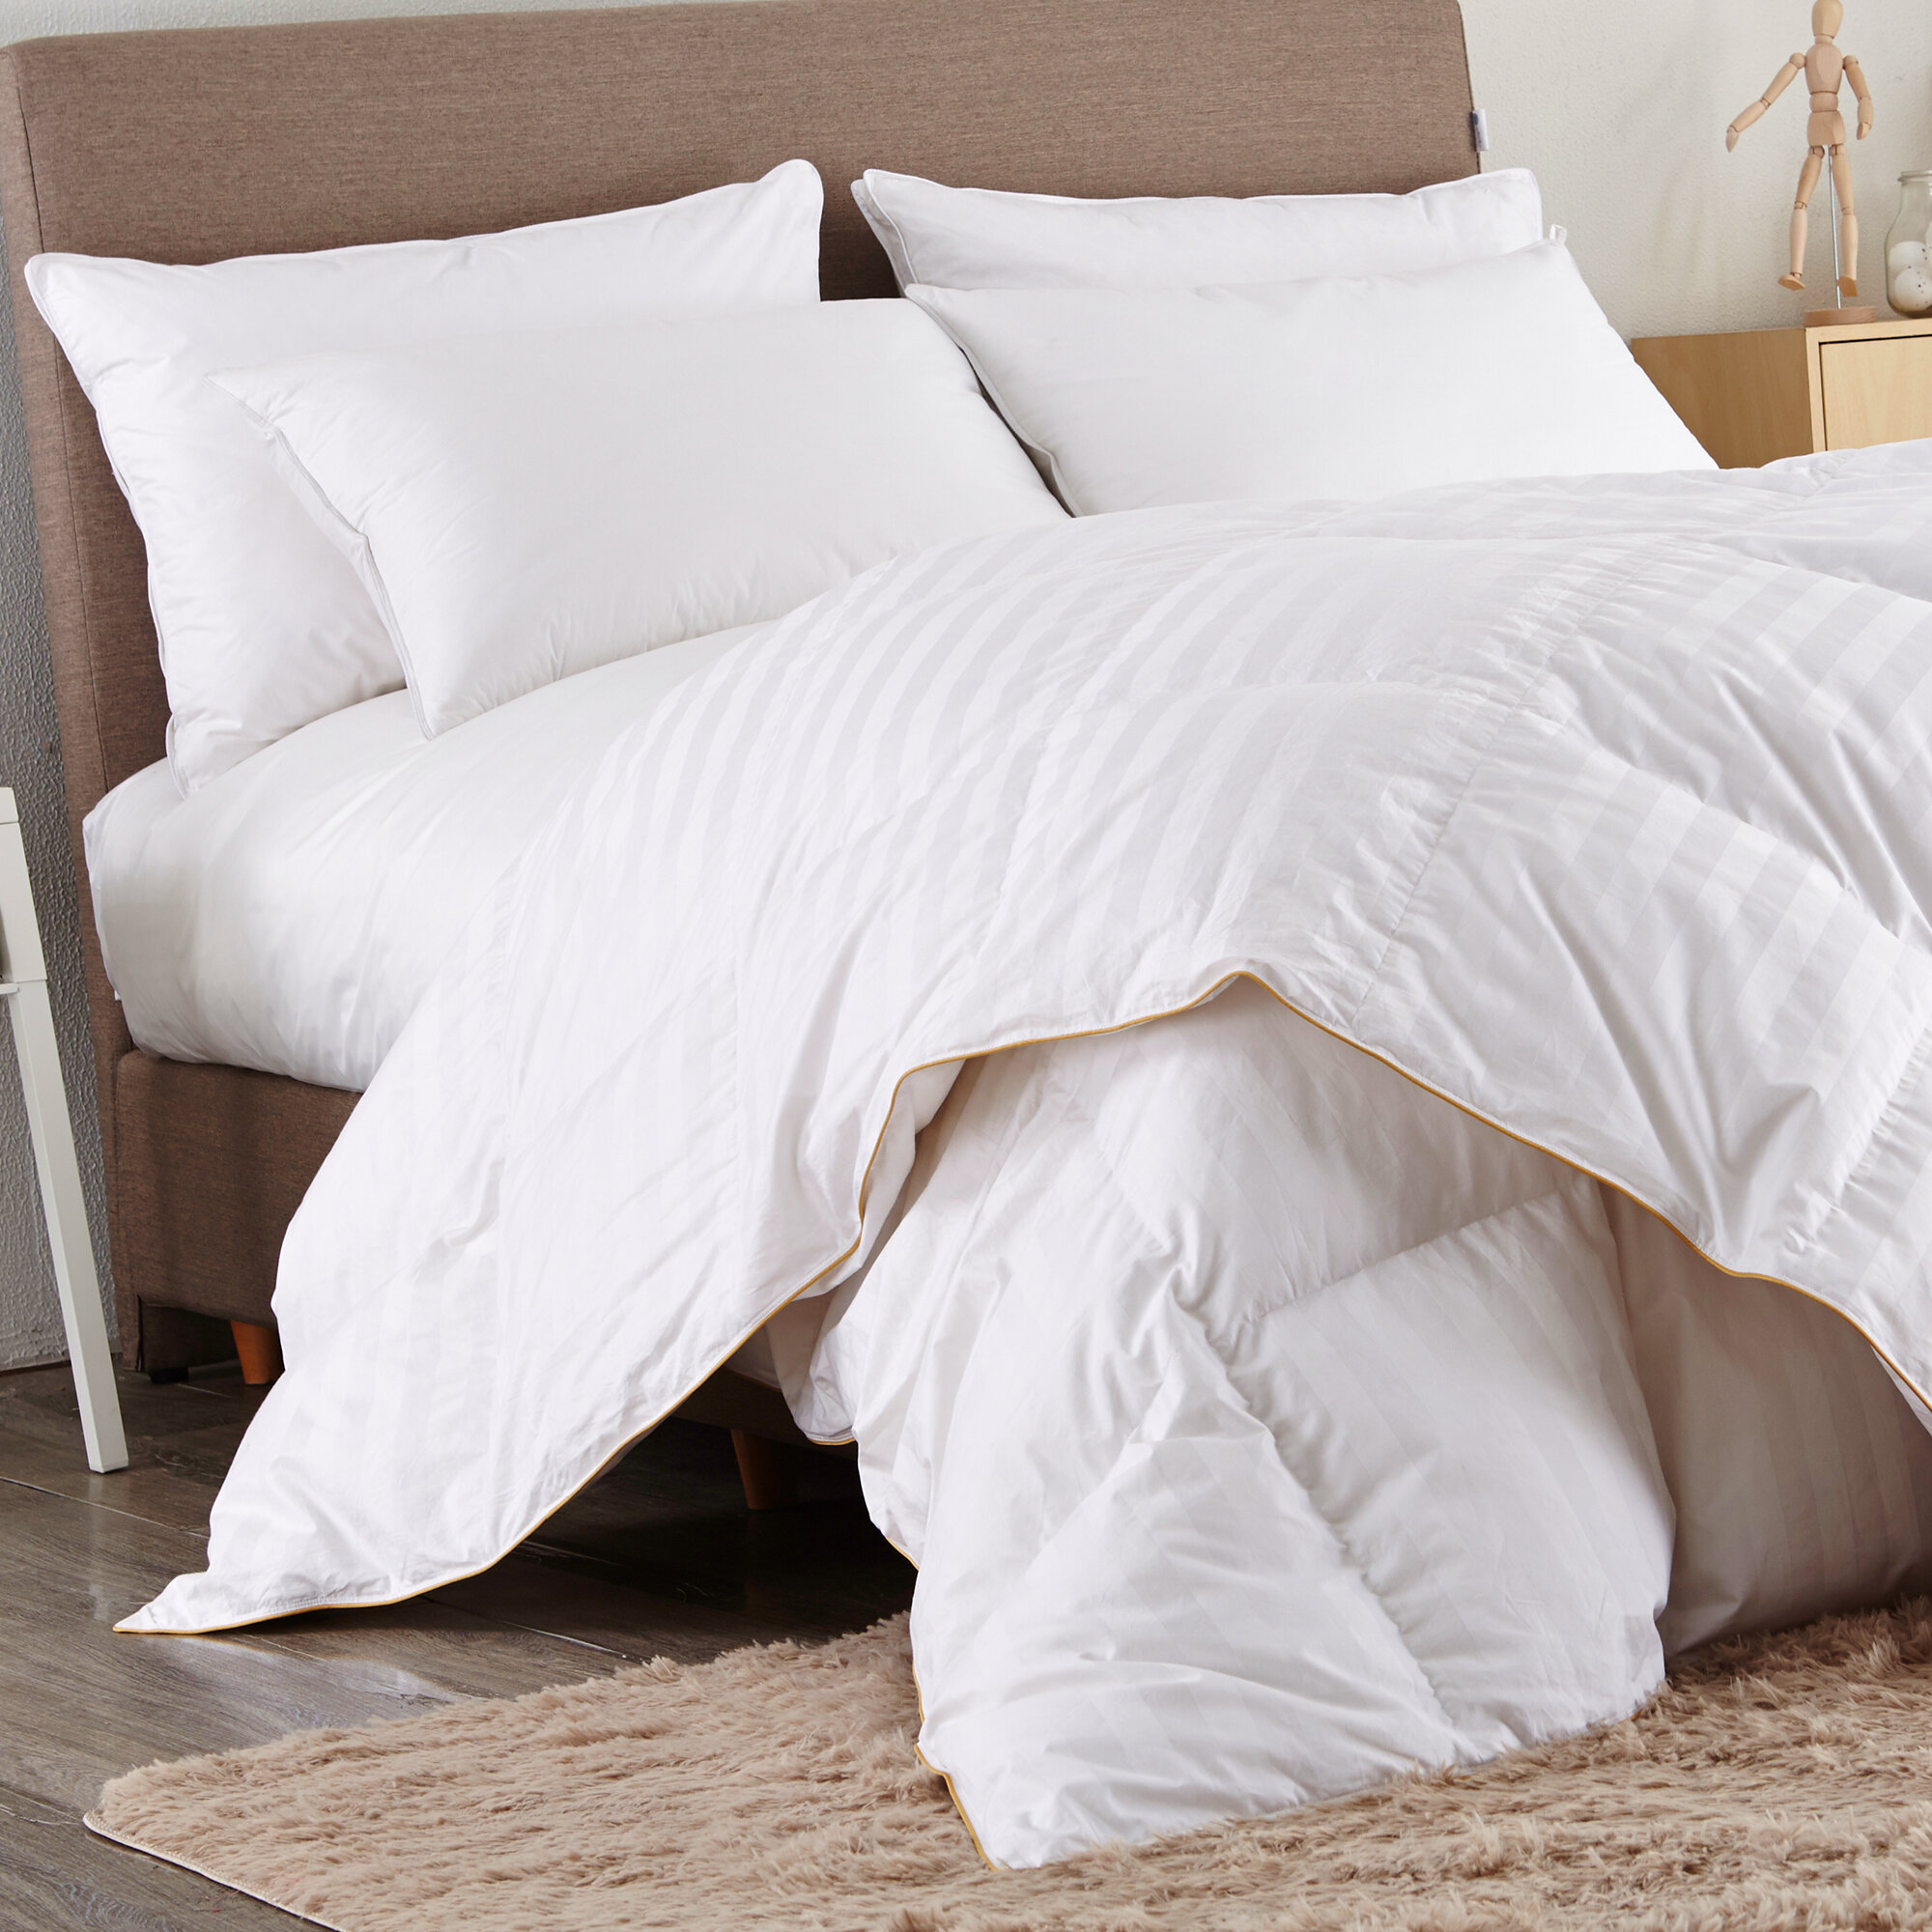 european comforter concierge bedding d platinum t hsn comforters and shop down